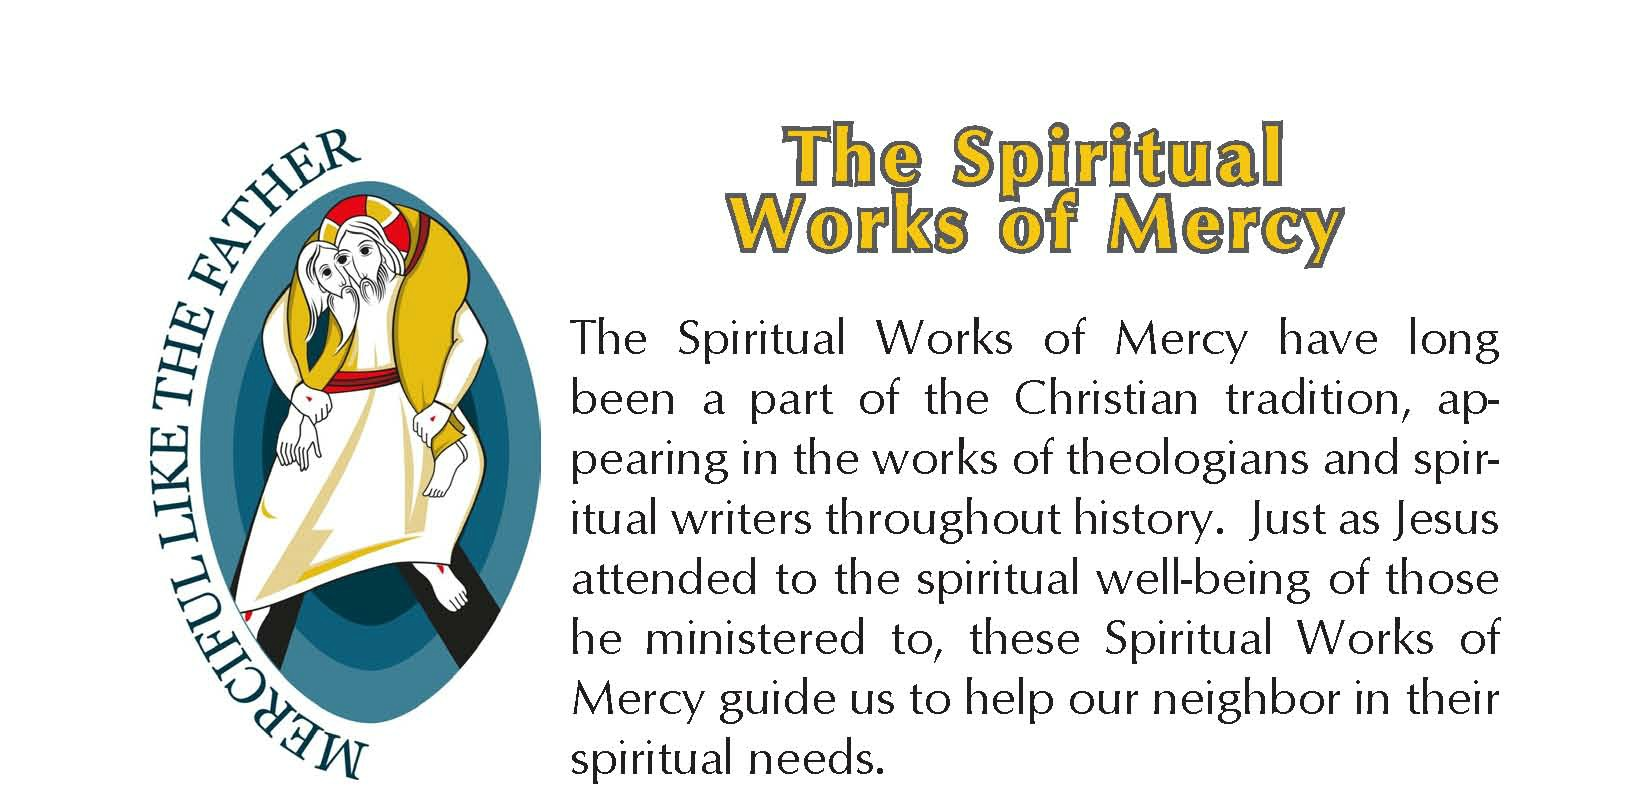 WORKS OF MERCY EXP - Spiritual brief